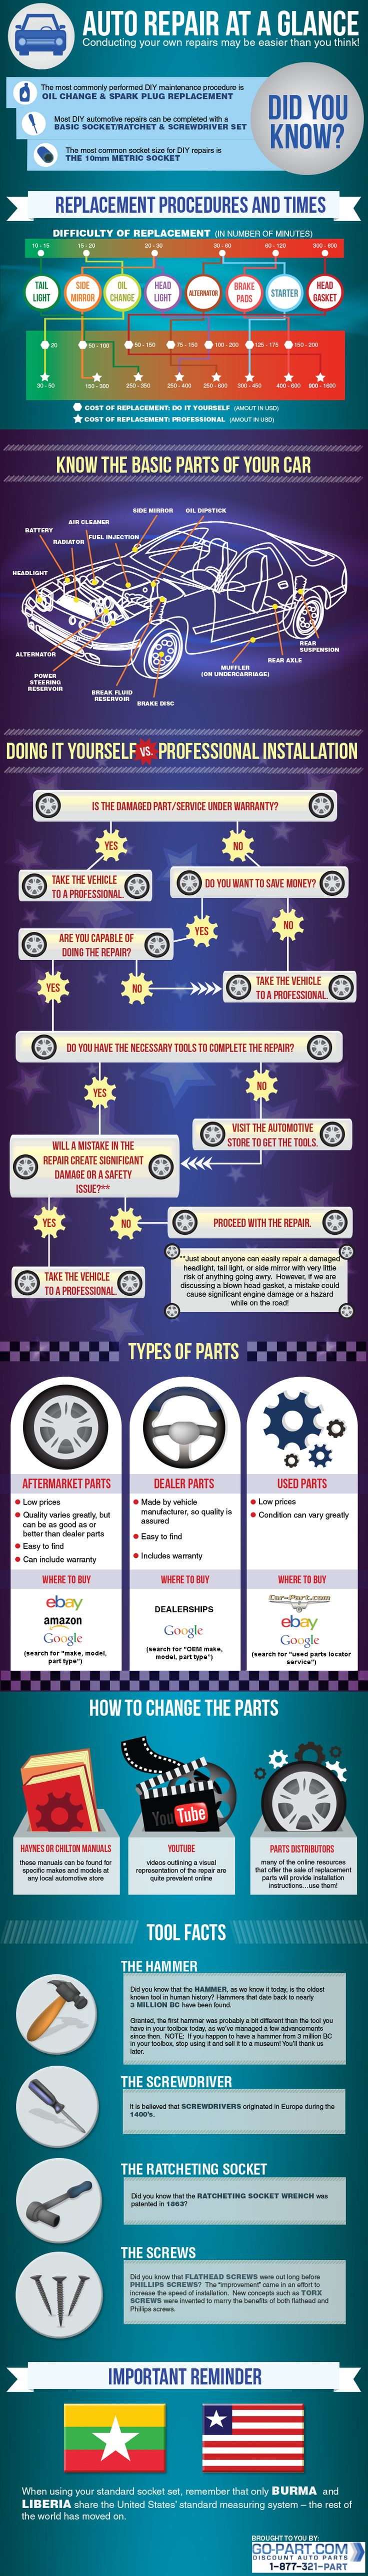 Car repairs at a glance infographic. Know the basics of repairing your car.